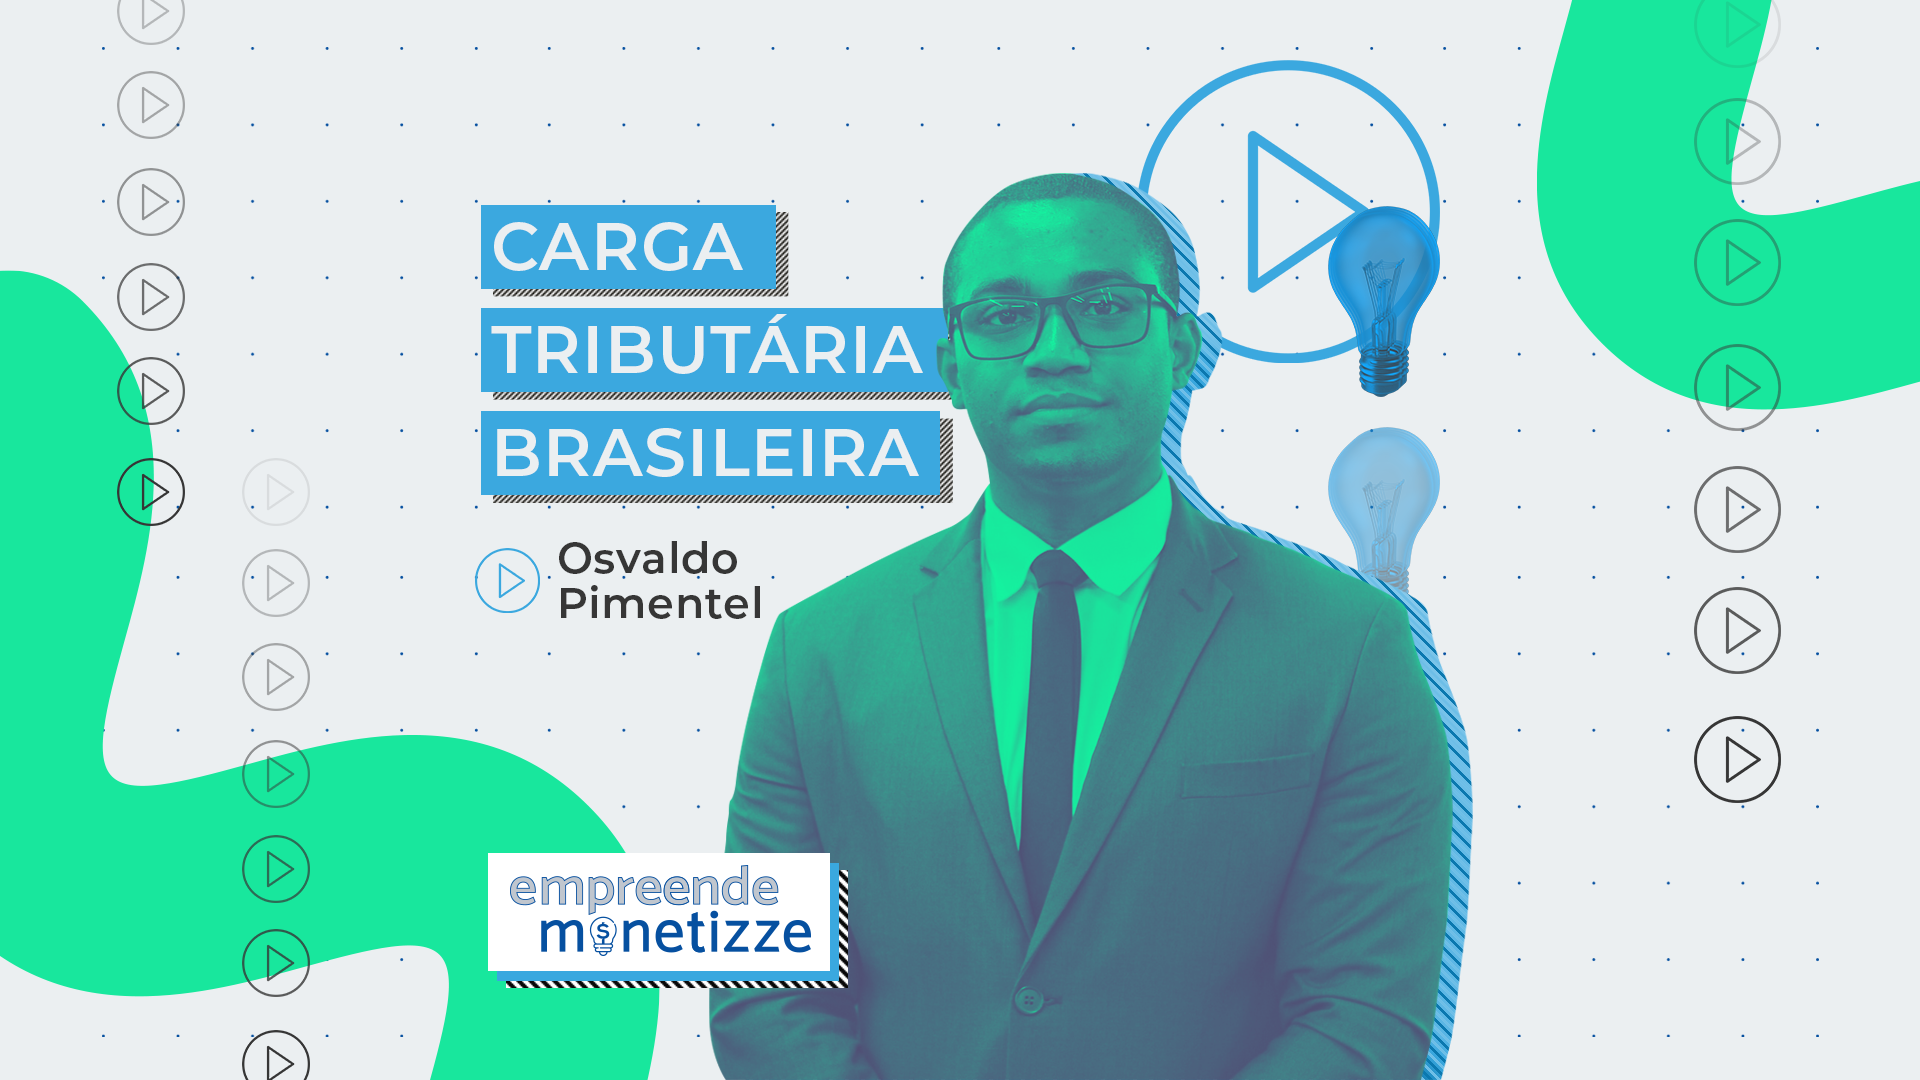 Palestra do Osvaldo no Empreende Monetizze